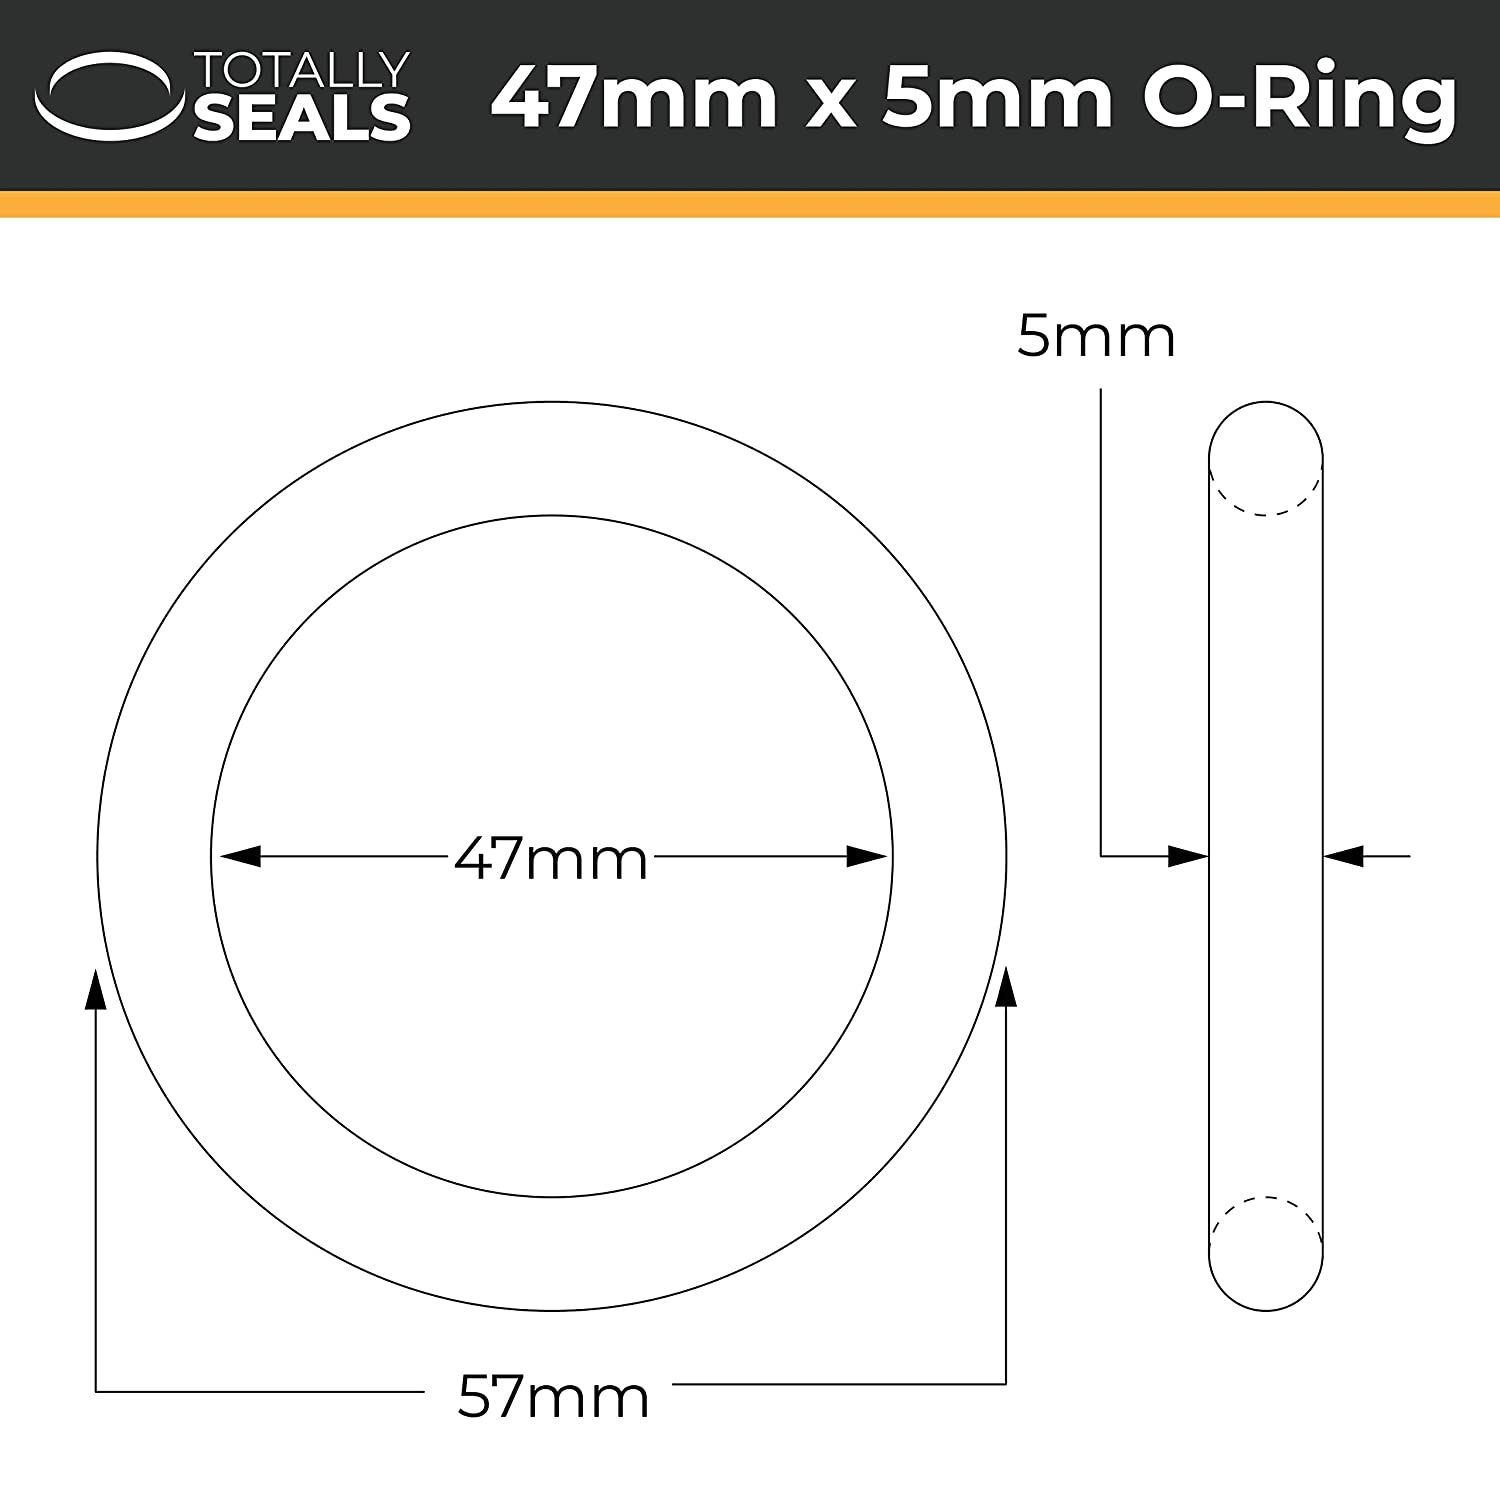 57mm OD Totally Seals/® 47mm x 5mm Pack of 02 Rubber Metric O-Rings Black Nitrile NBR 70A Shore Hardness